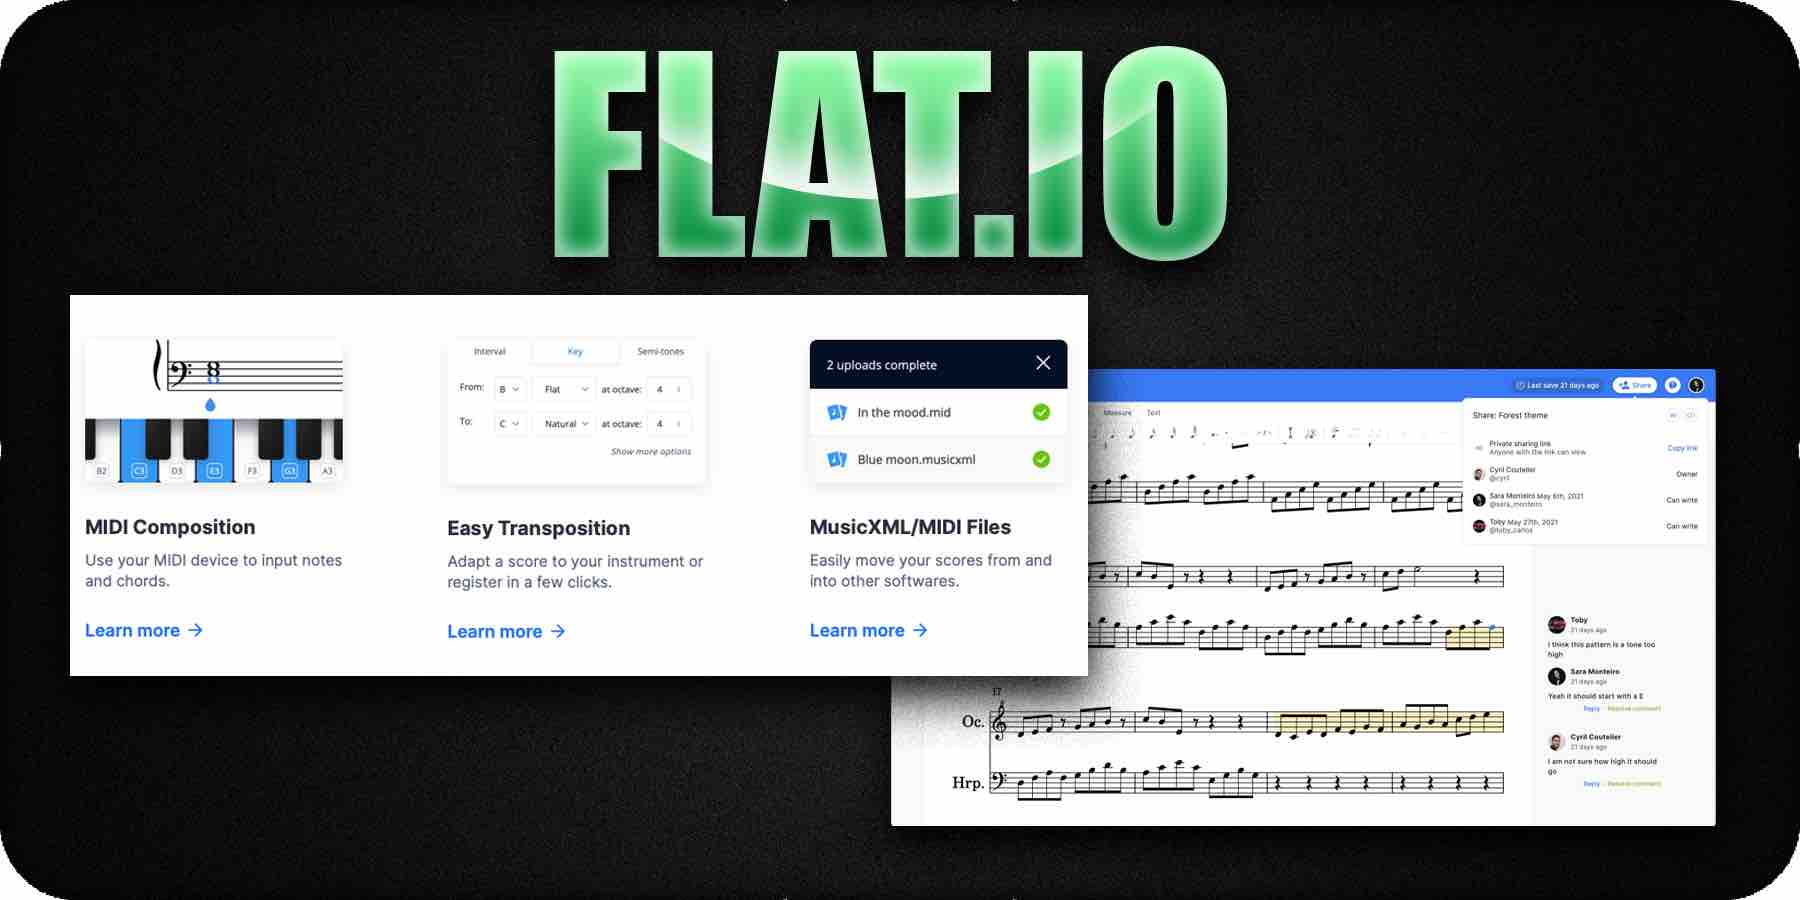 Flat.io music composition software